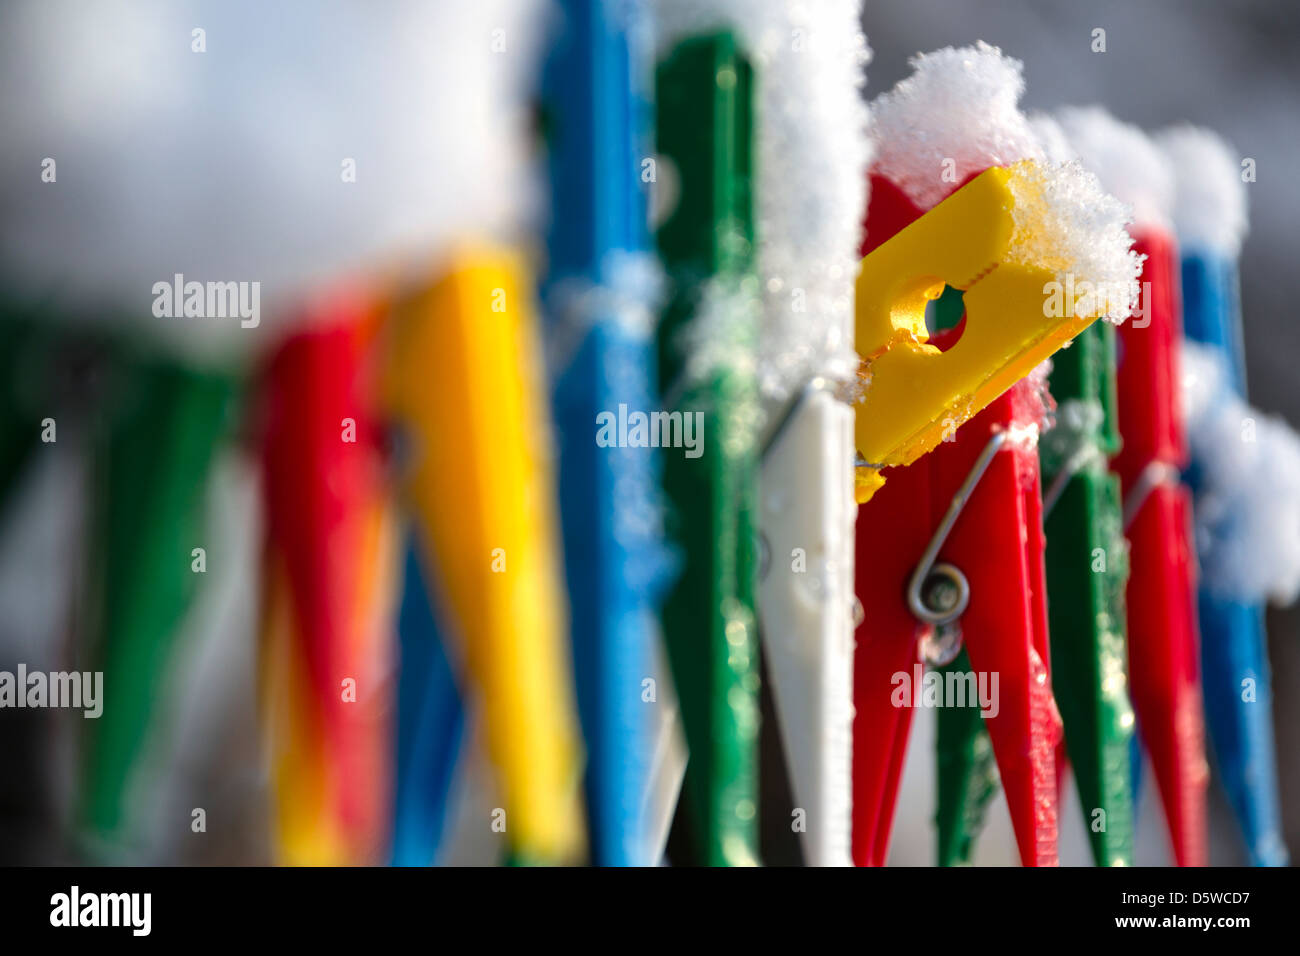 Washing line with a row of colorful pegs covered with snow queued in a row with one peg peeking out of the crowd - Stock Image